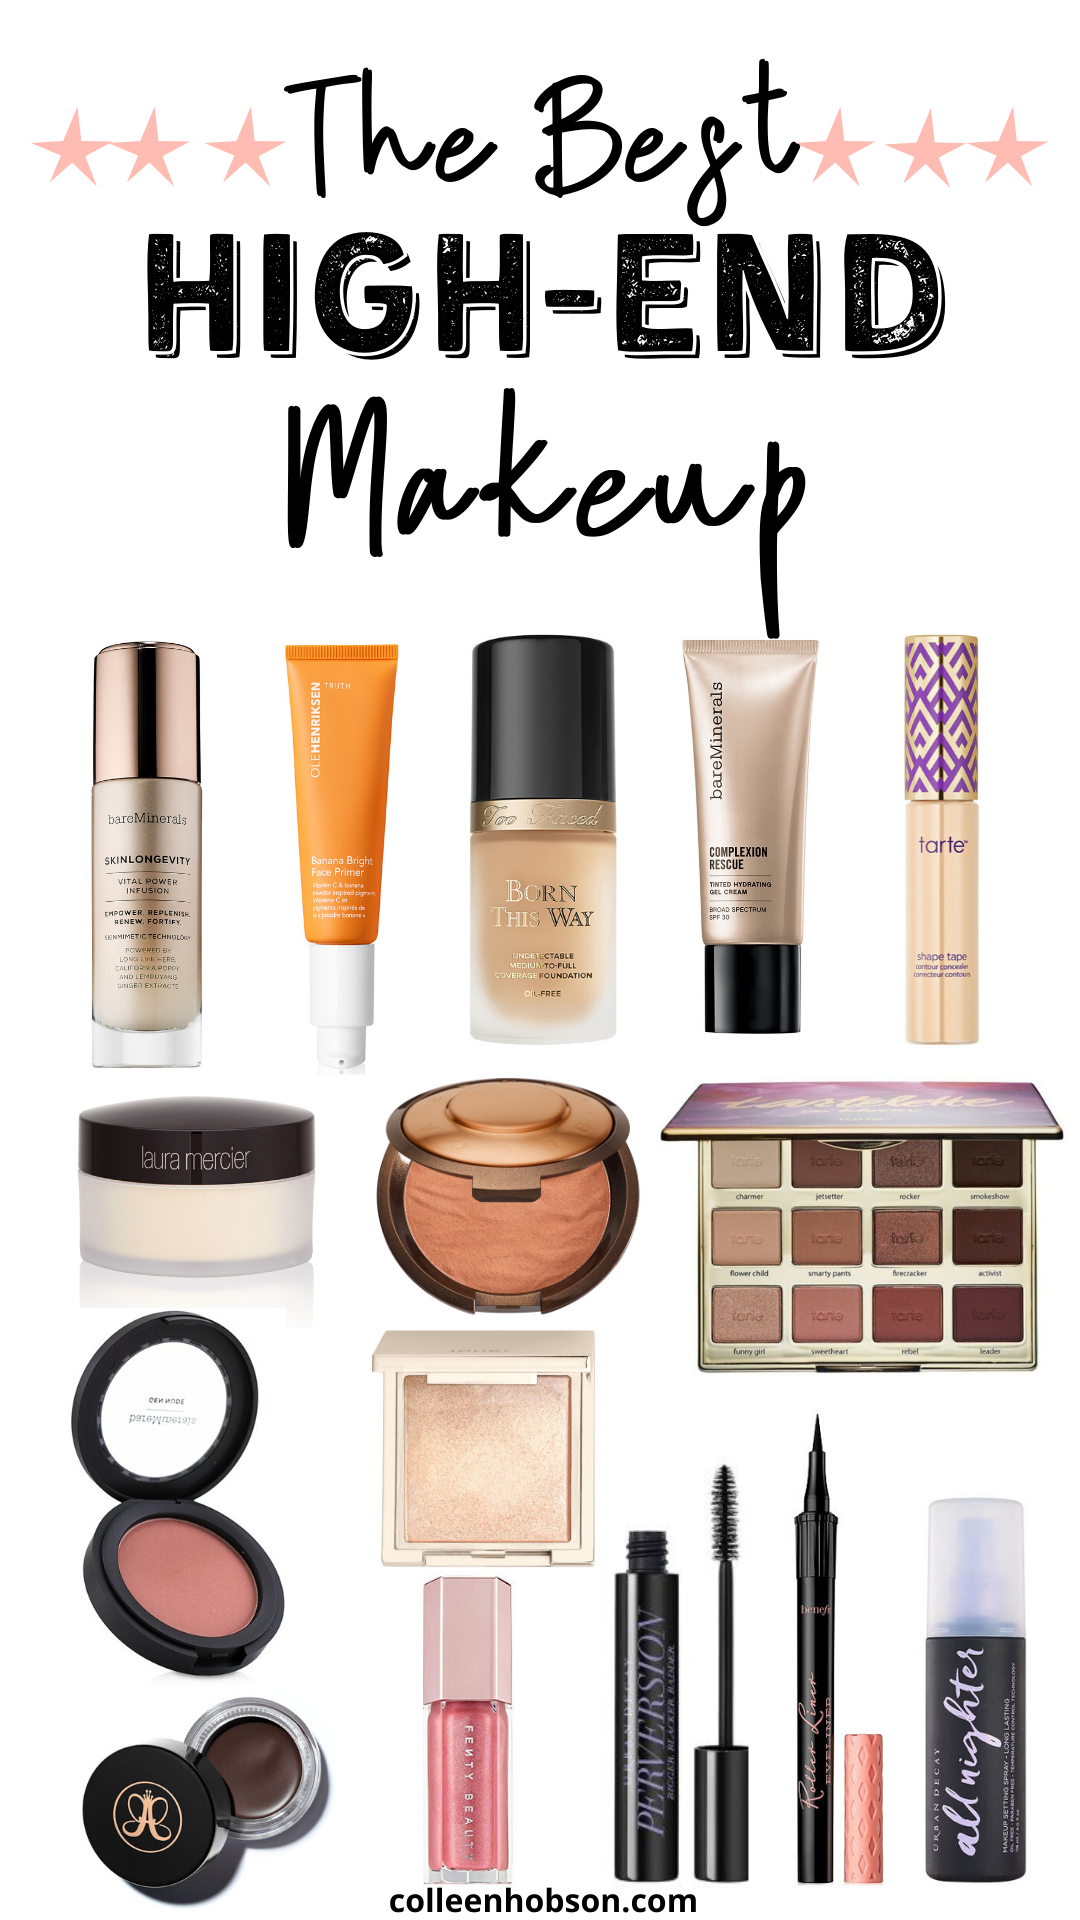 The Best High End Makeup Holy Grail Products Best high